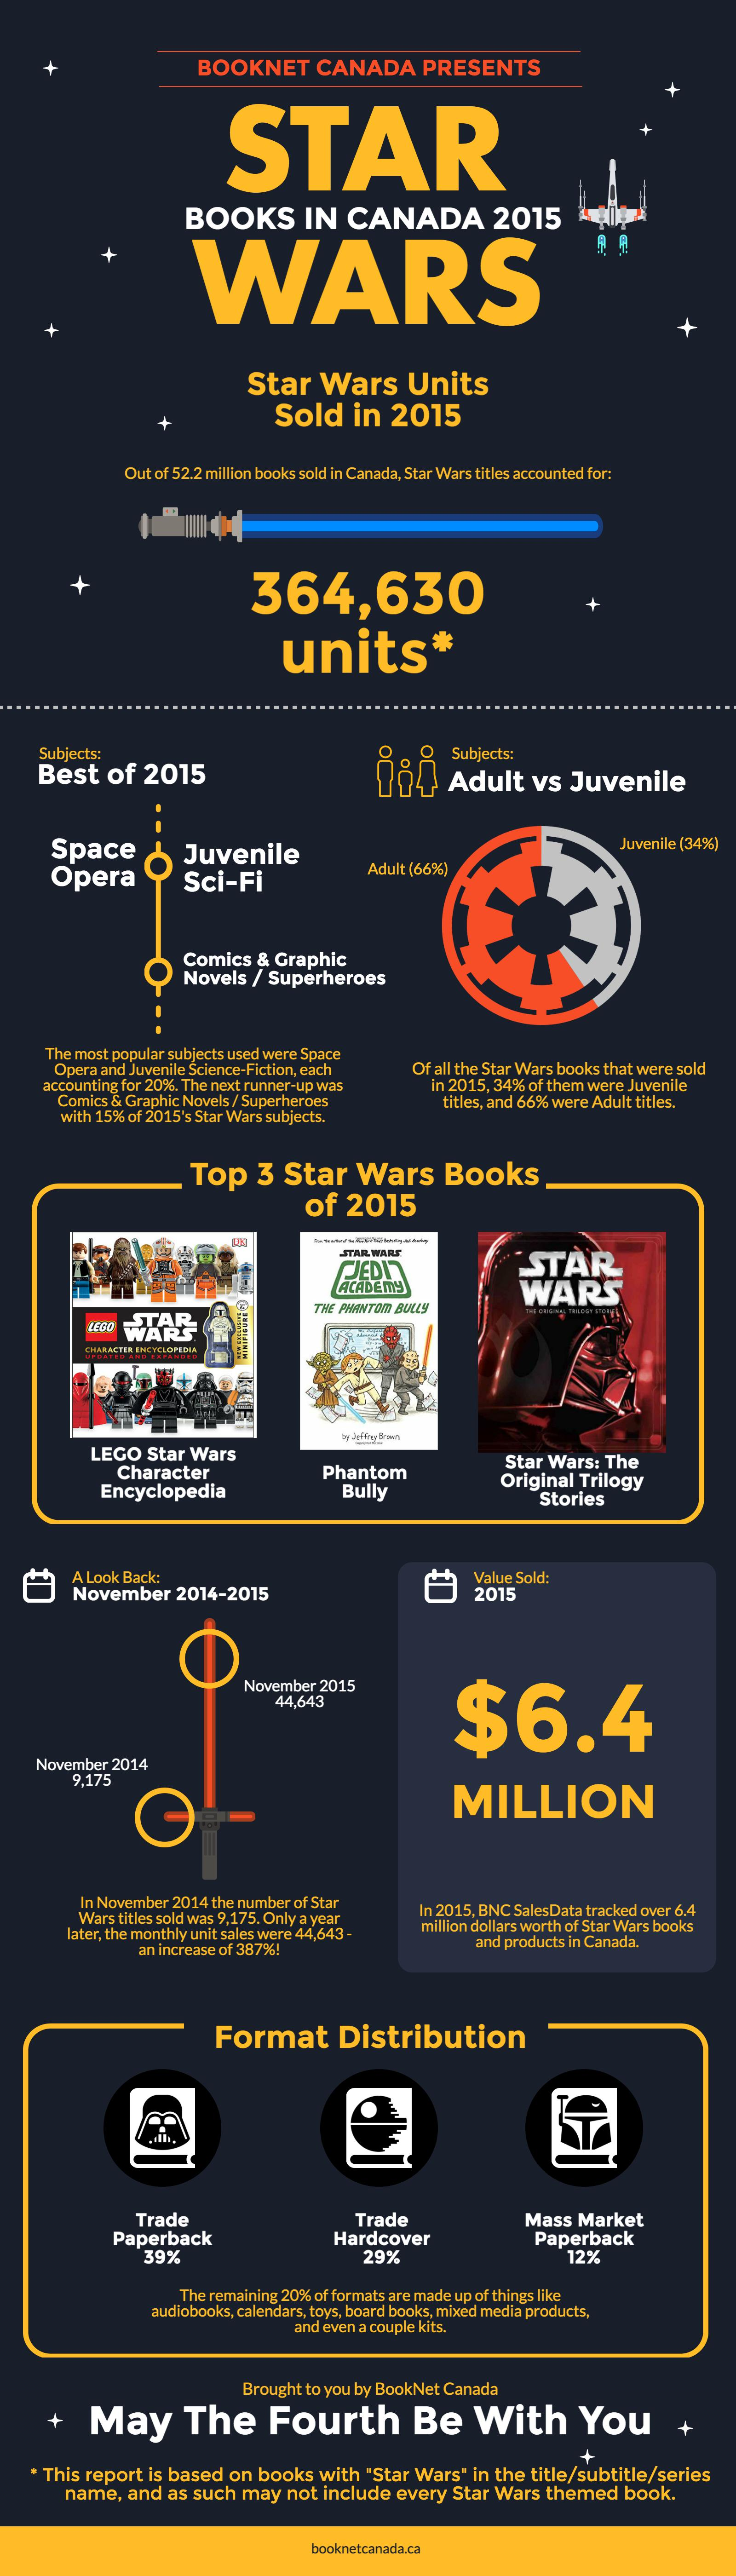 You can also download this glorious infographic in  pdf  form!